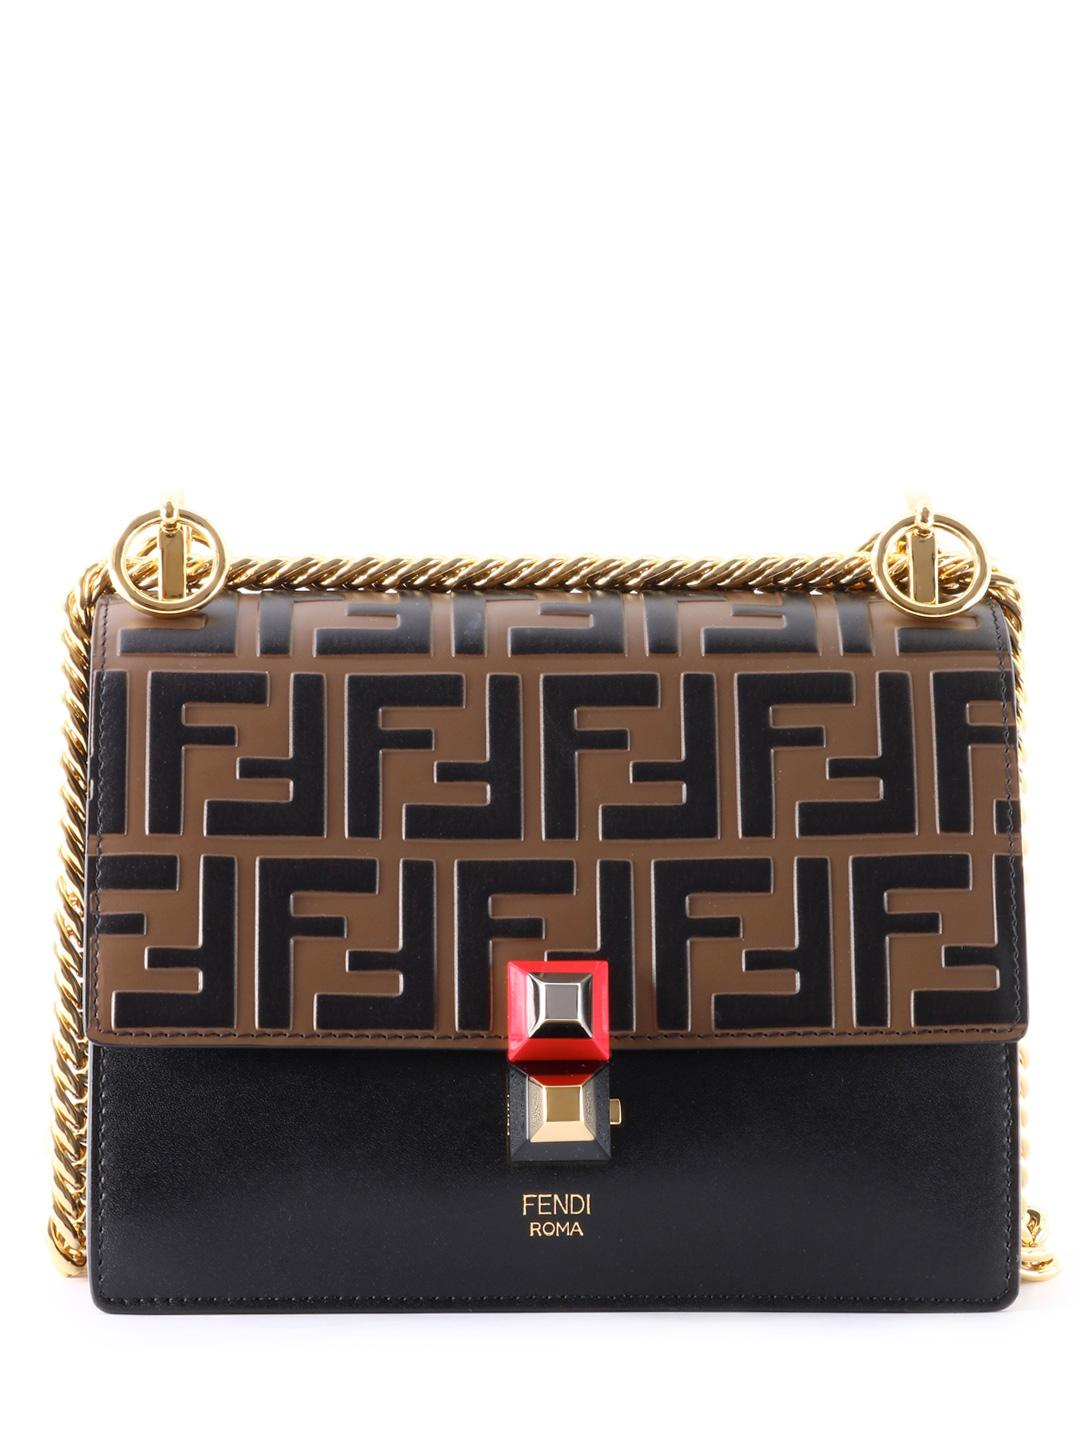 5103d0c90c75 Lyst - Fendi Borsa Nero in Black